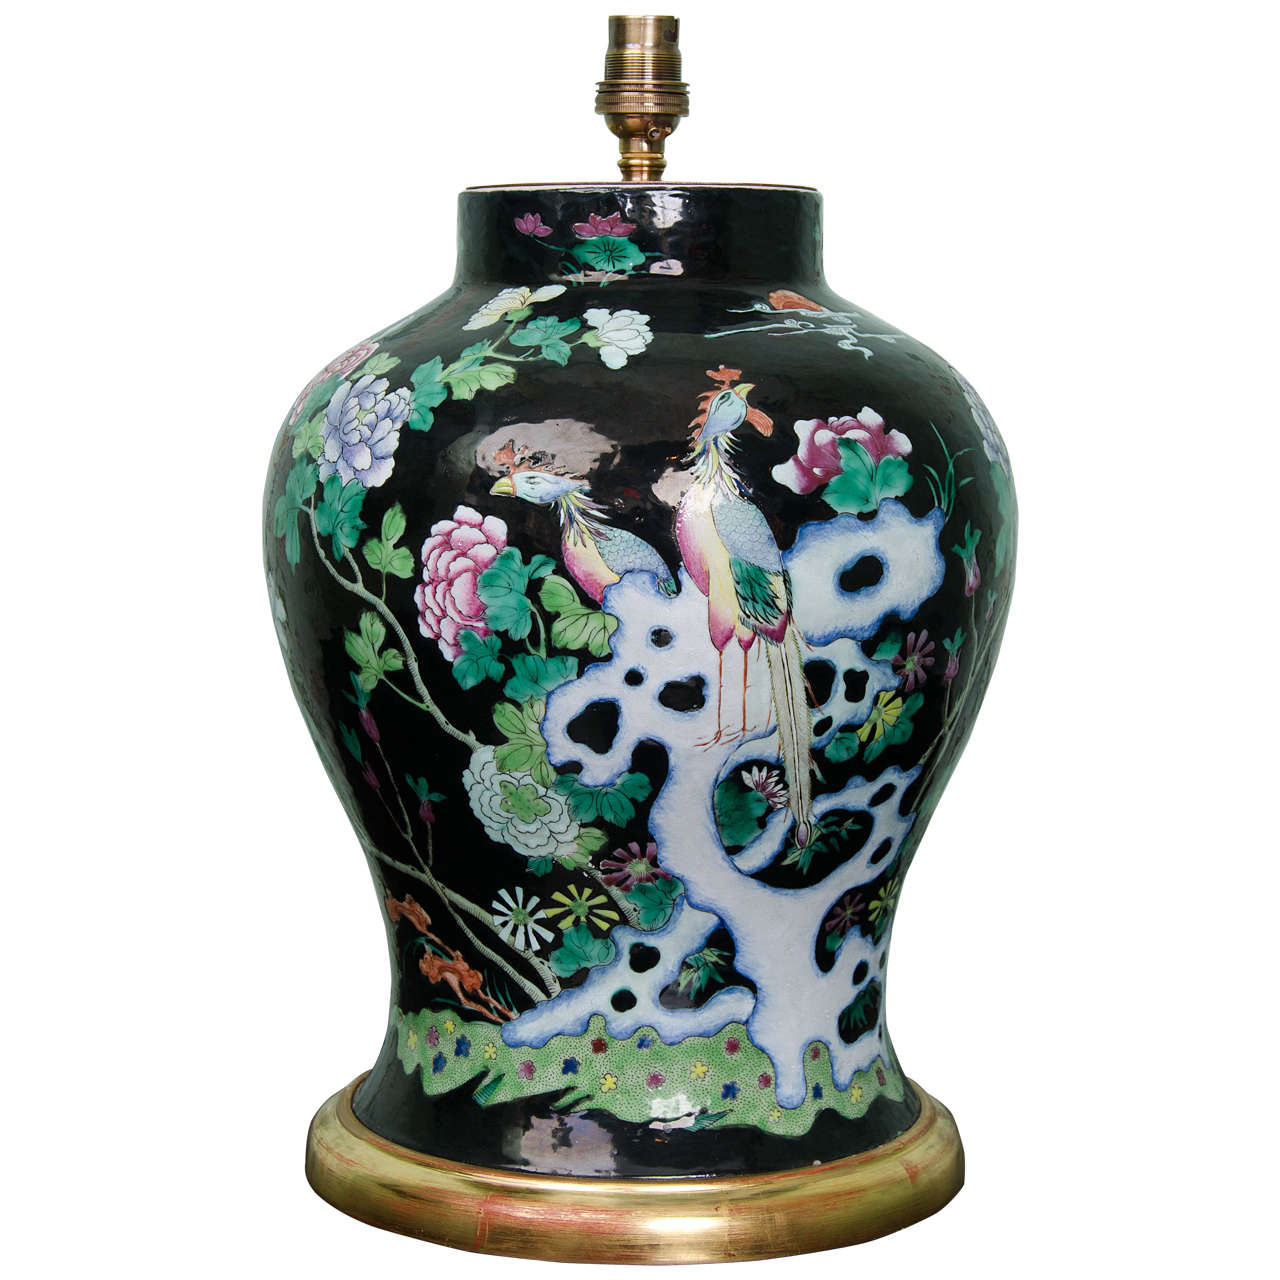 Chinese famille noire porcelain lamped baluster vase circa 1850 chinese famille noire porcelain lamped baluster vase circa 1850 for sale reviewsmspy